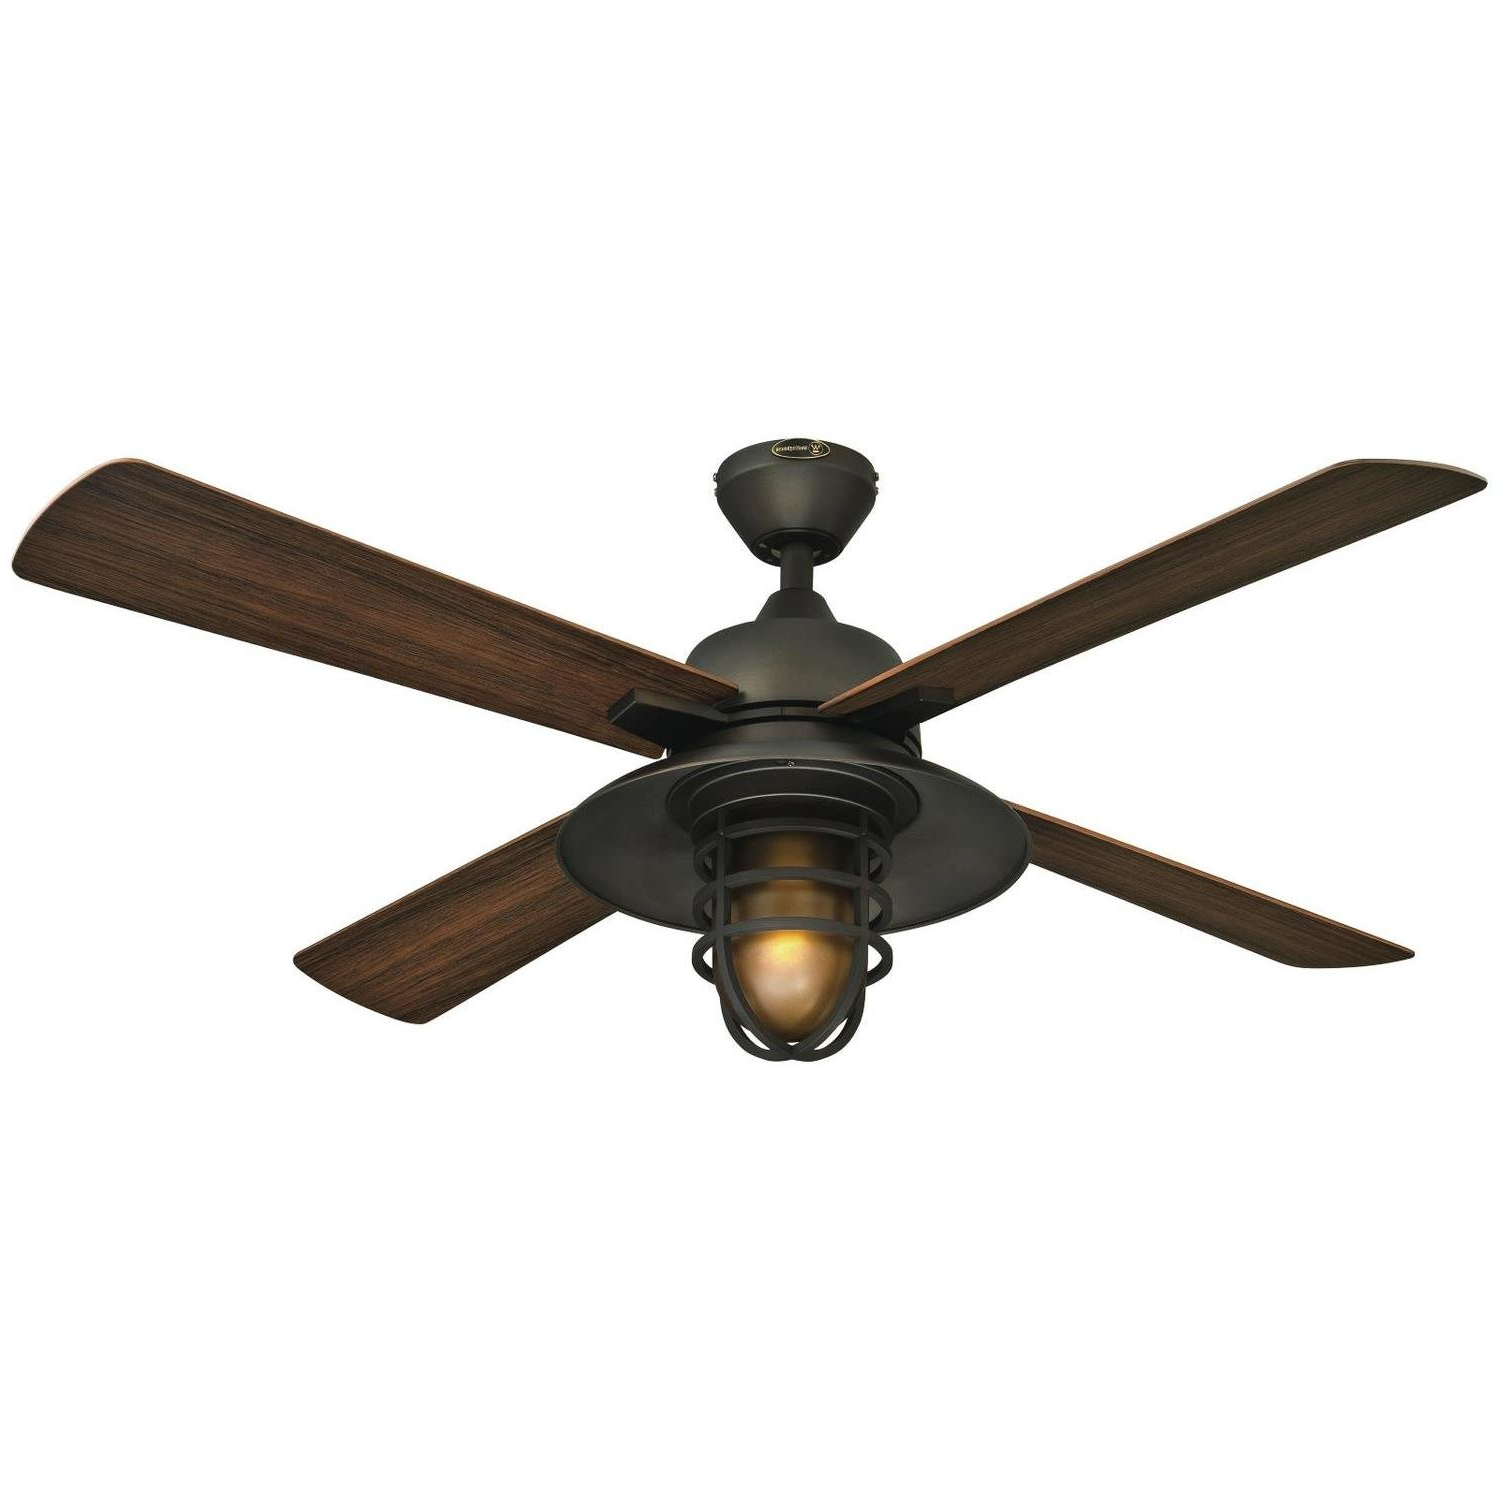 "Most Recent 52"" Barcus 4 Blade Ceiling Fan, Light Kit Included Within Fredericksen 5 Blade Ceiling Fans (View 15 of 20)"